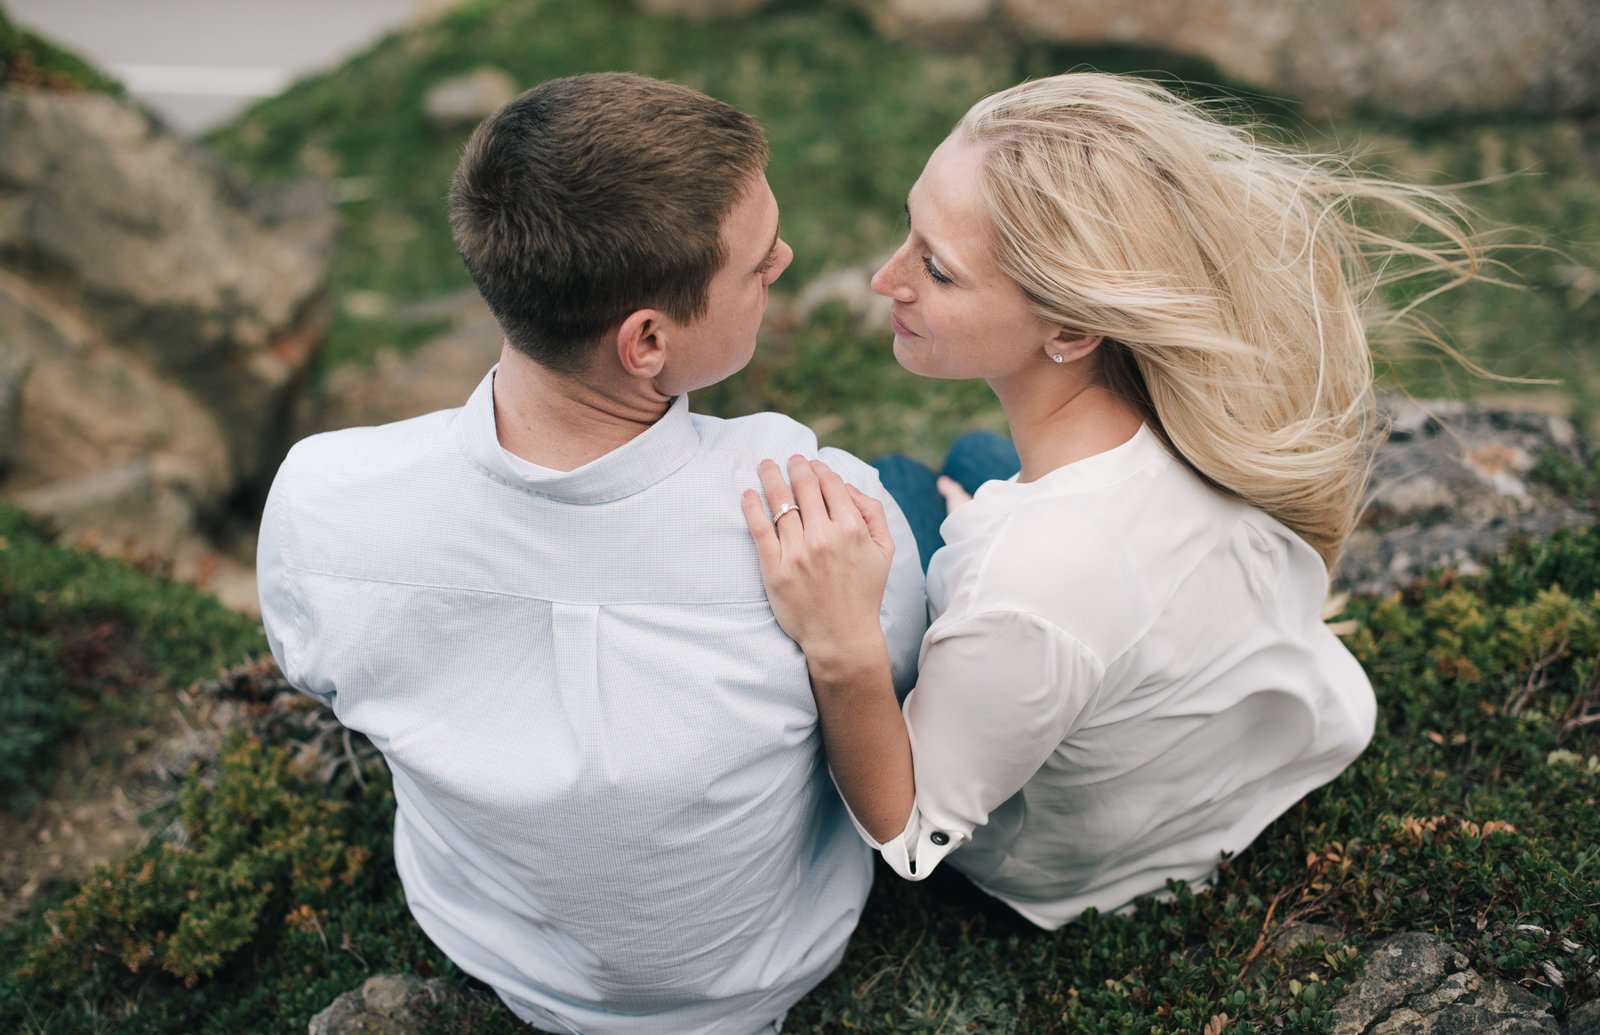 019_Erica Rose Photography_Anchorage Engagement Photographer